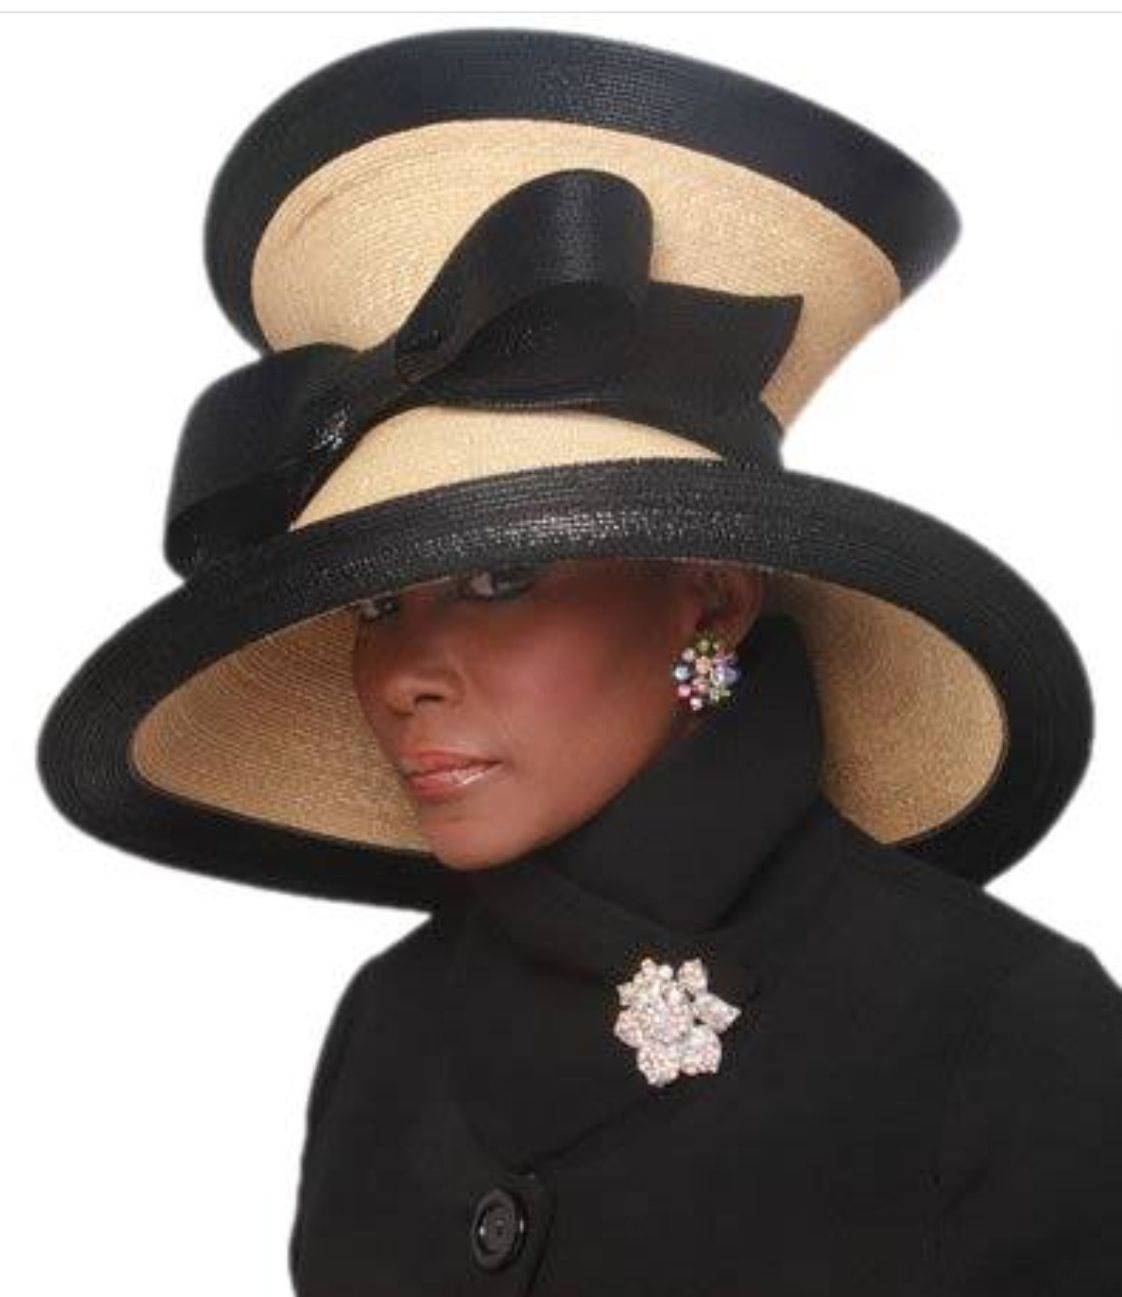 Cecily Tyson is wearing that hat!  e2838e038a08